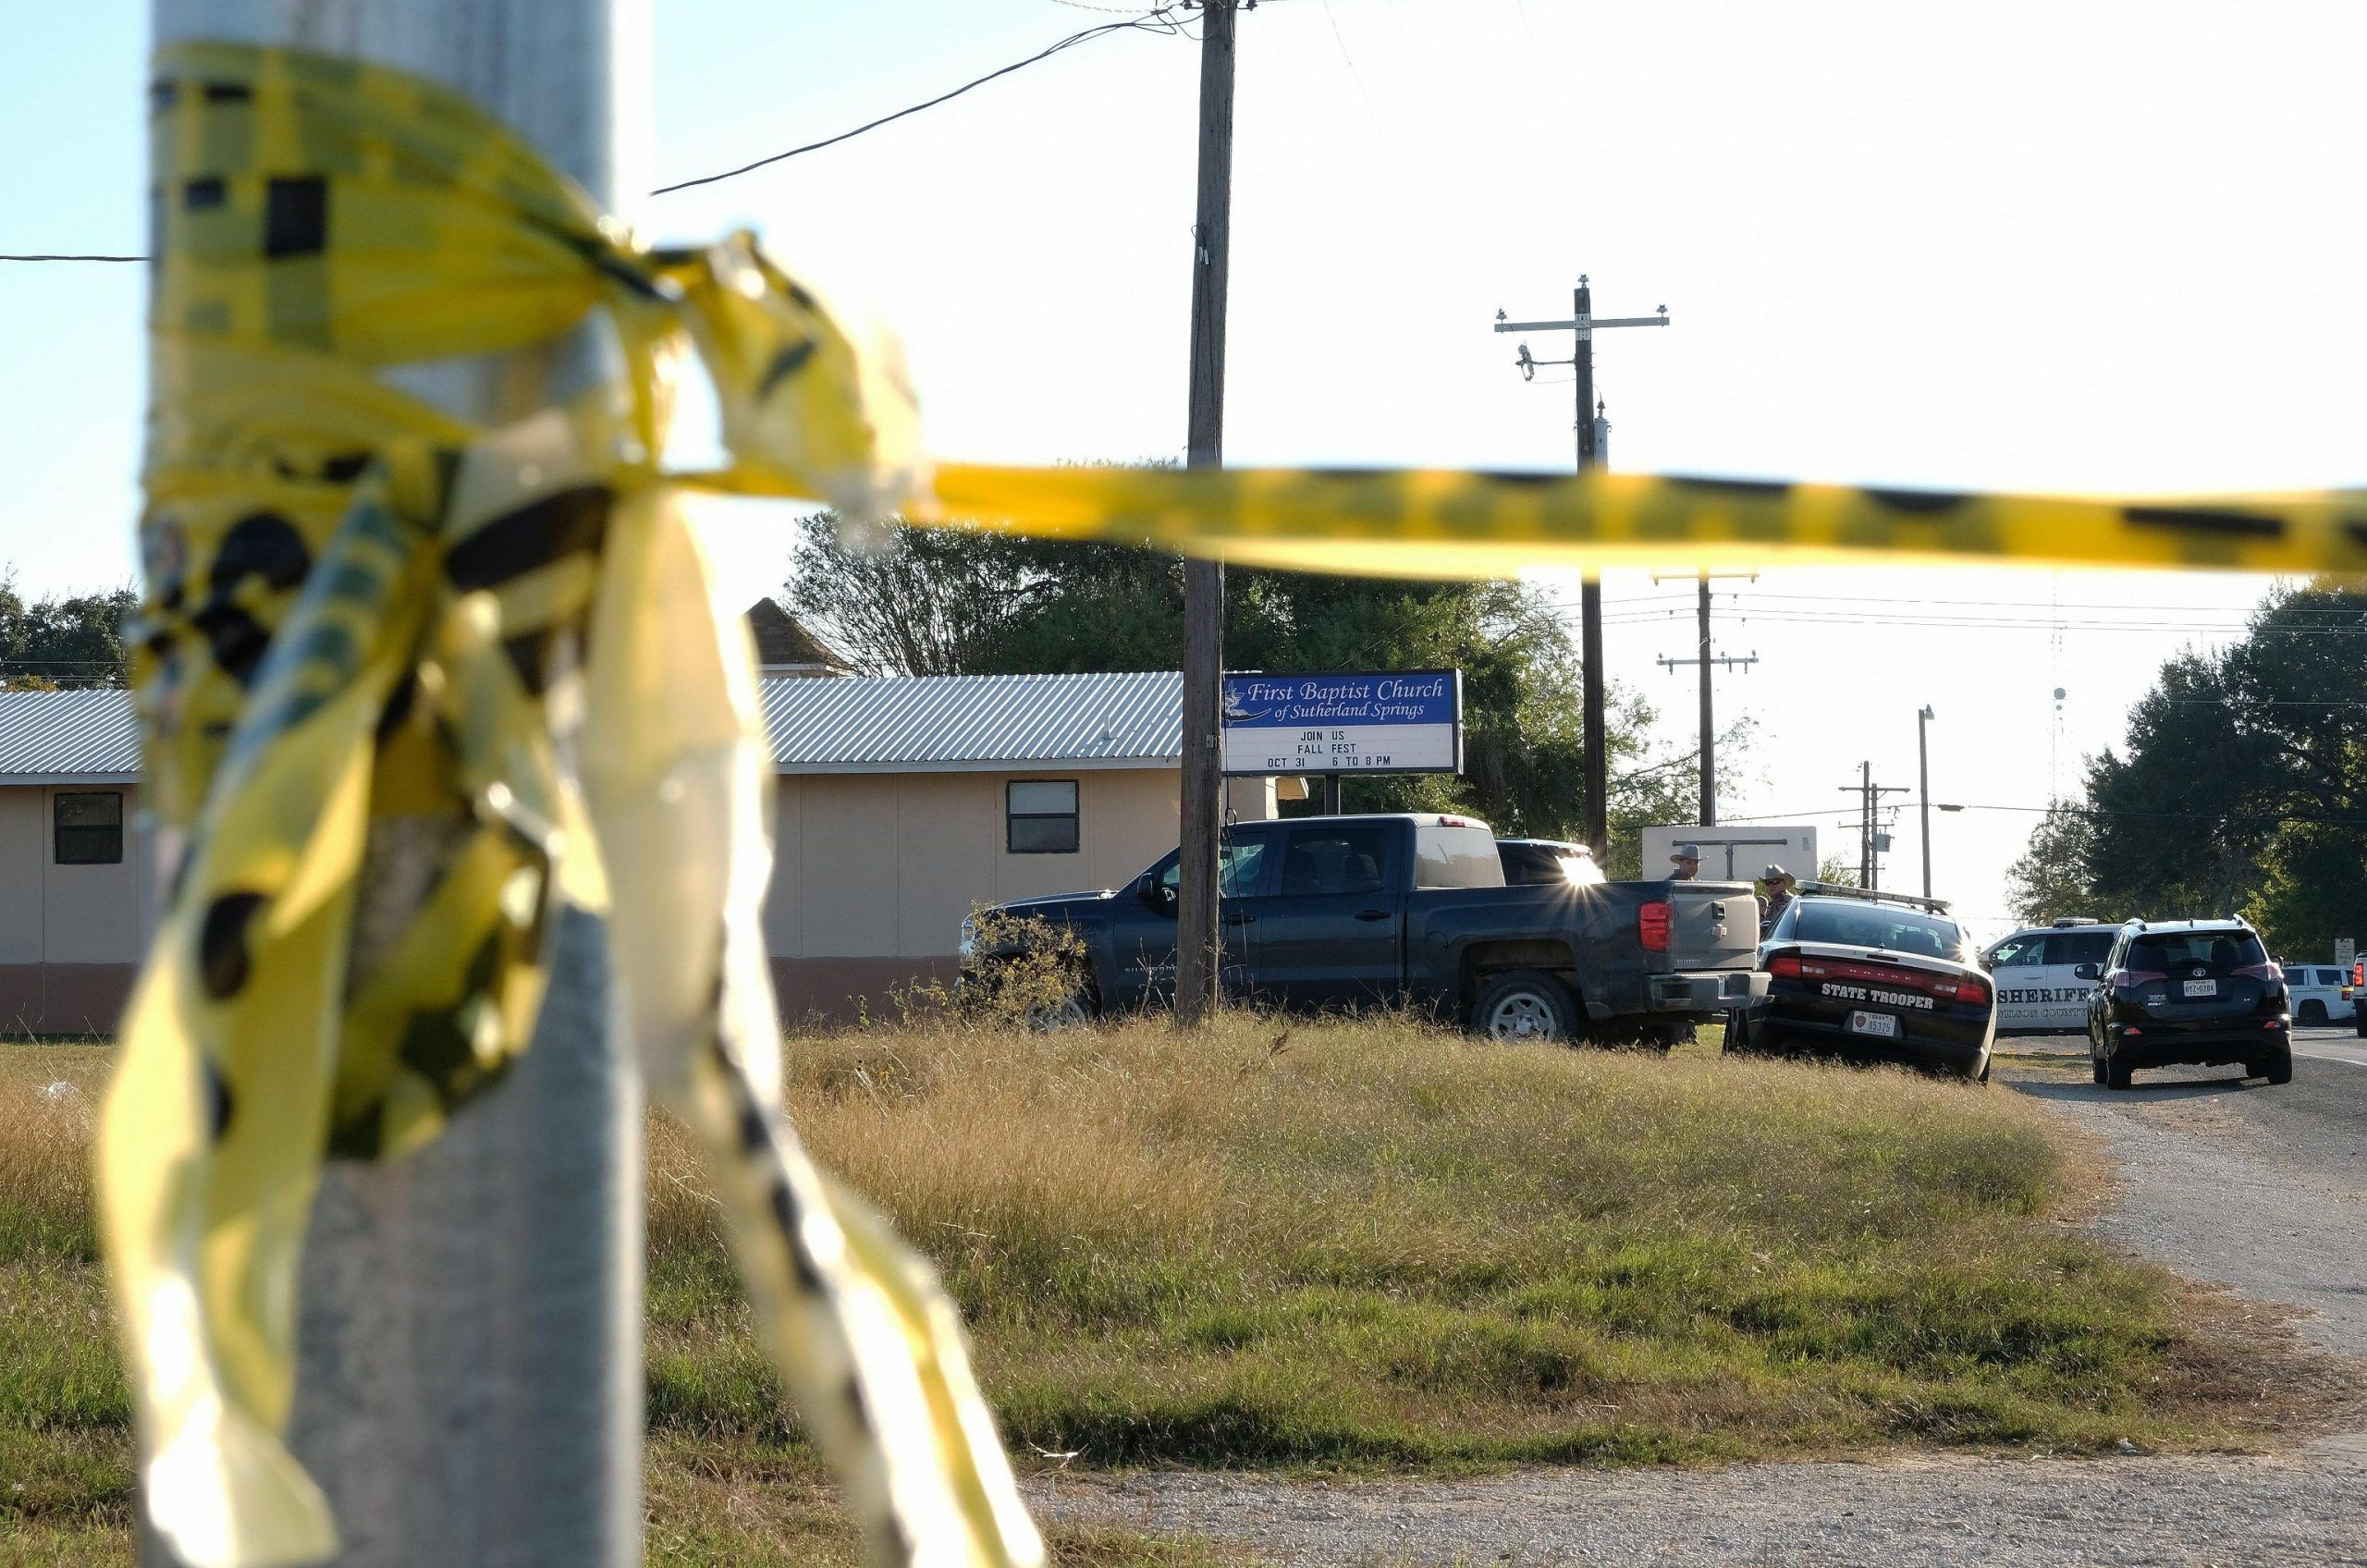 Mass shooting at baptist church in Sutherland Springs, Texas